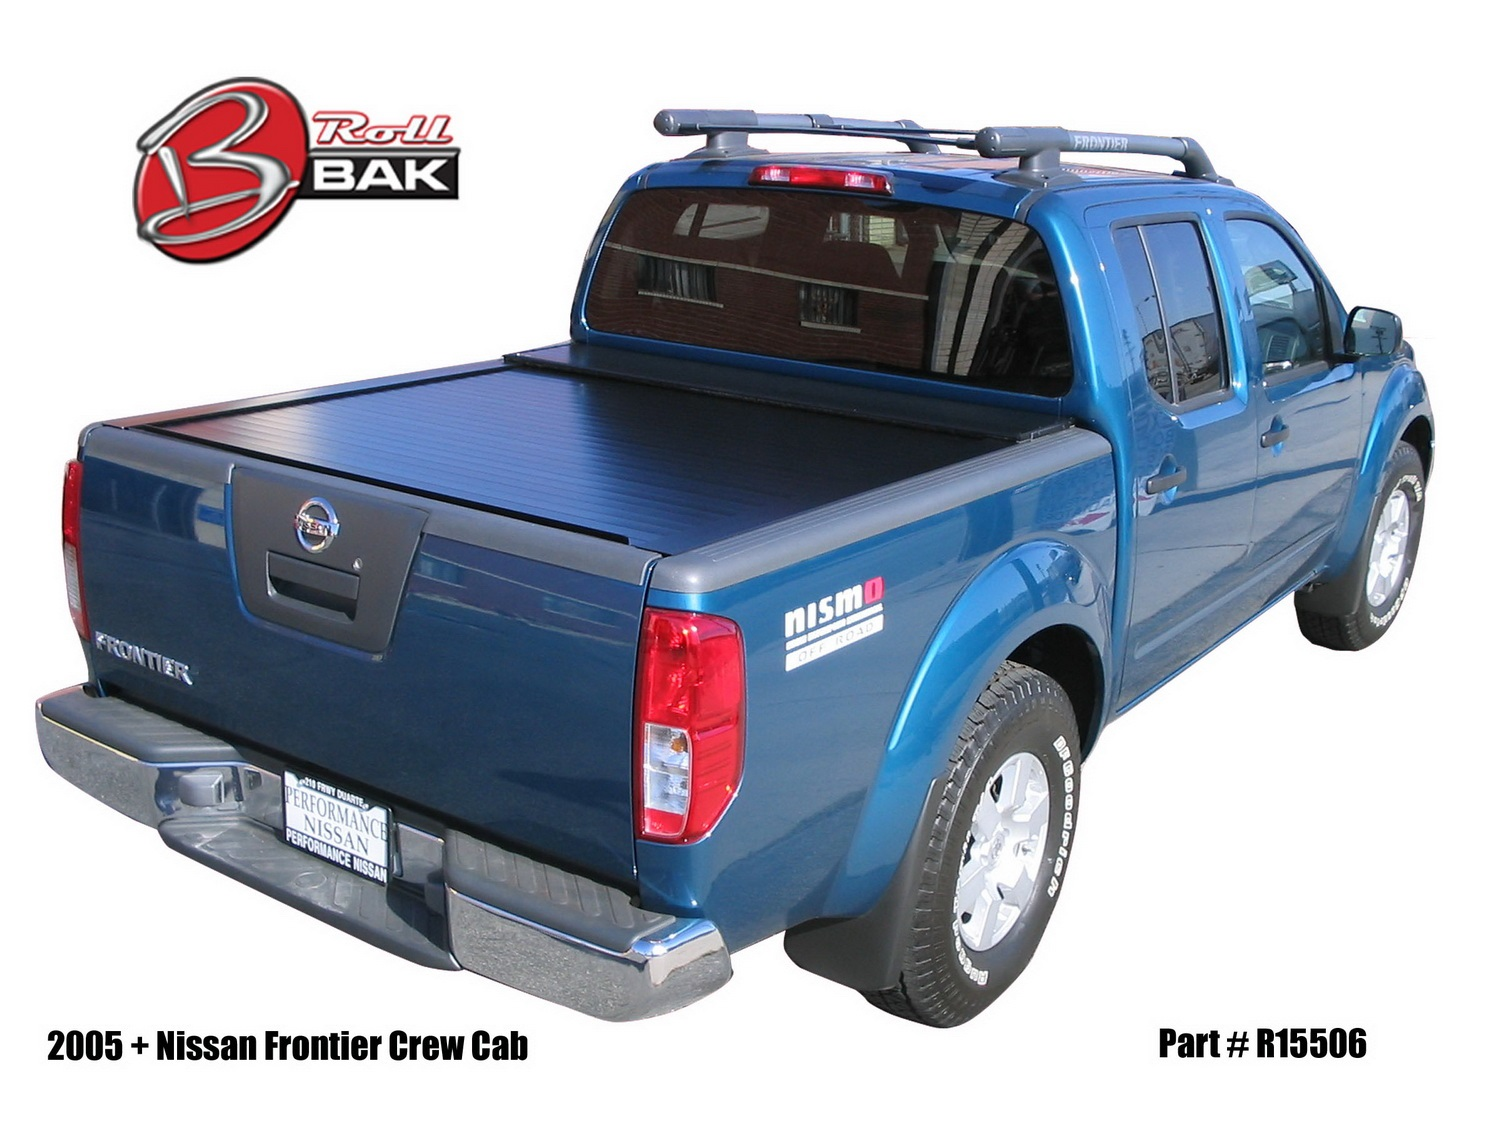 Bak rollbak g2 tonneau cover for 05 15 nissan frontier suzuki equator 6 bed